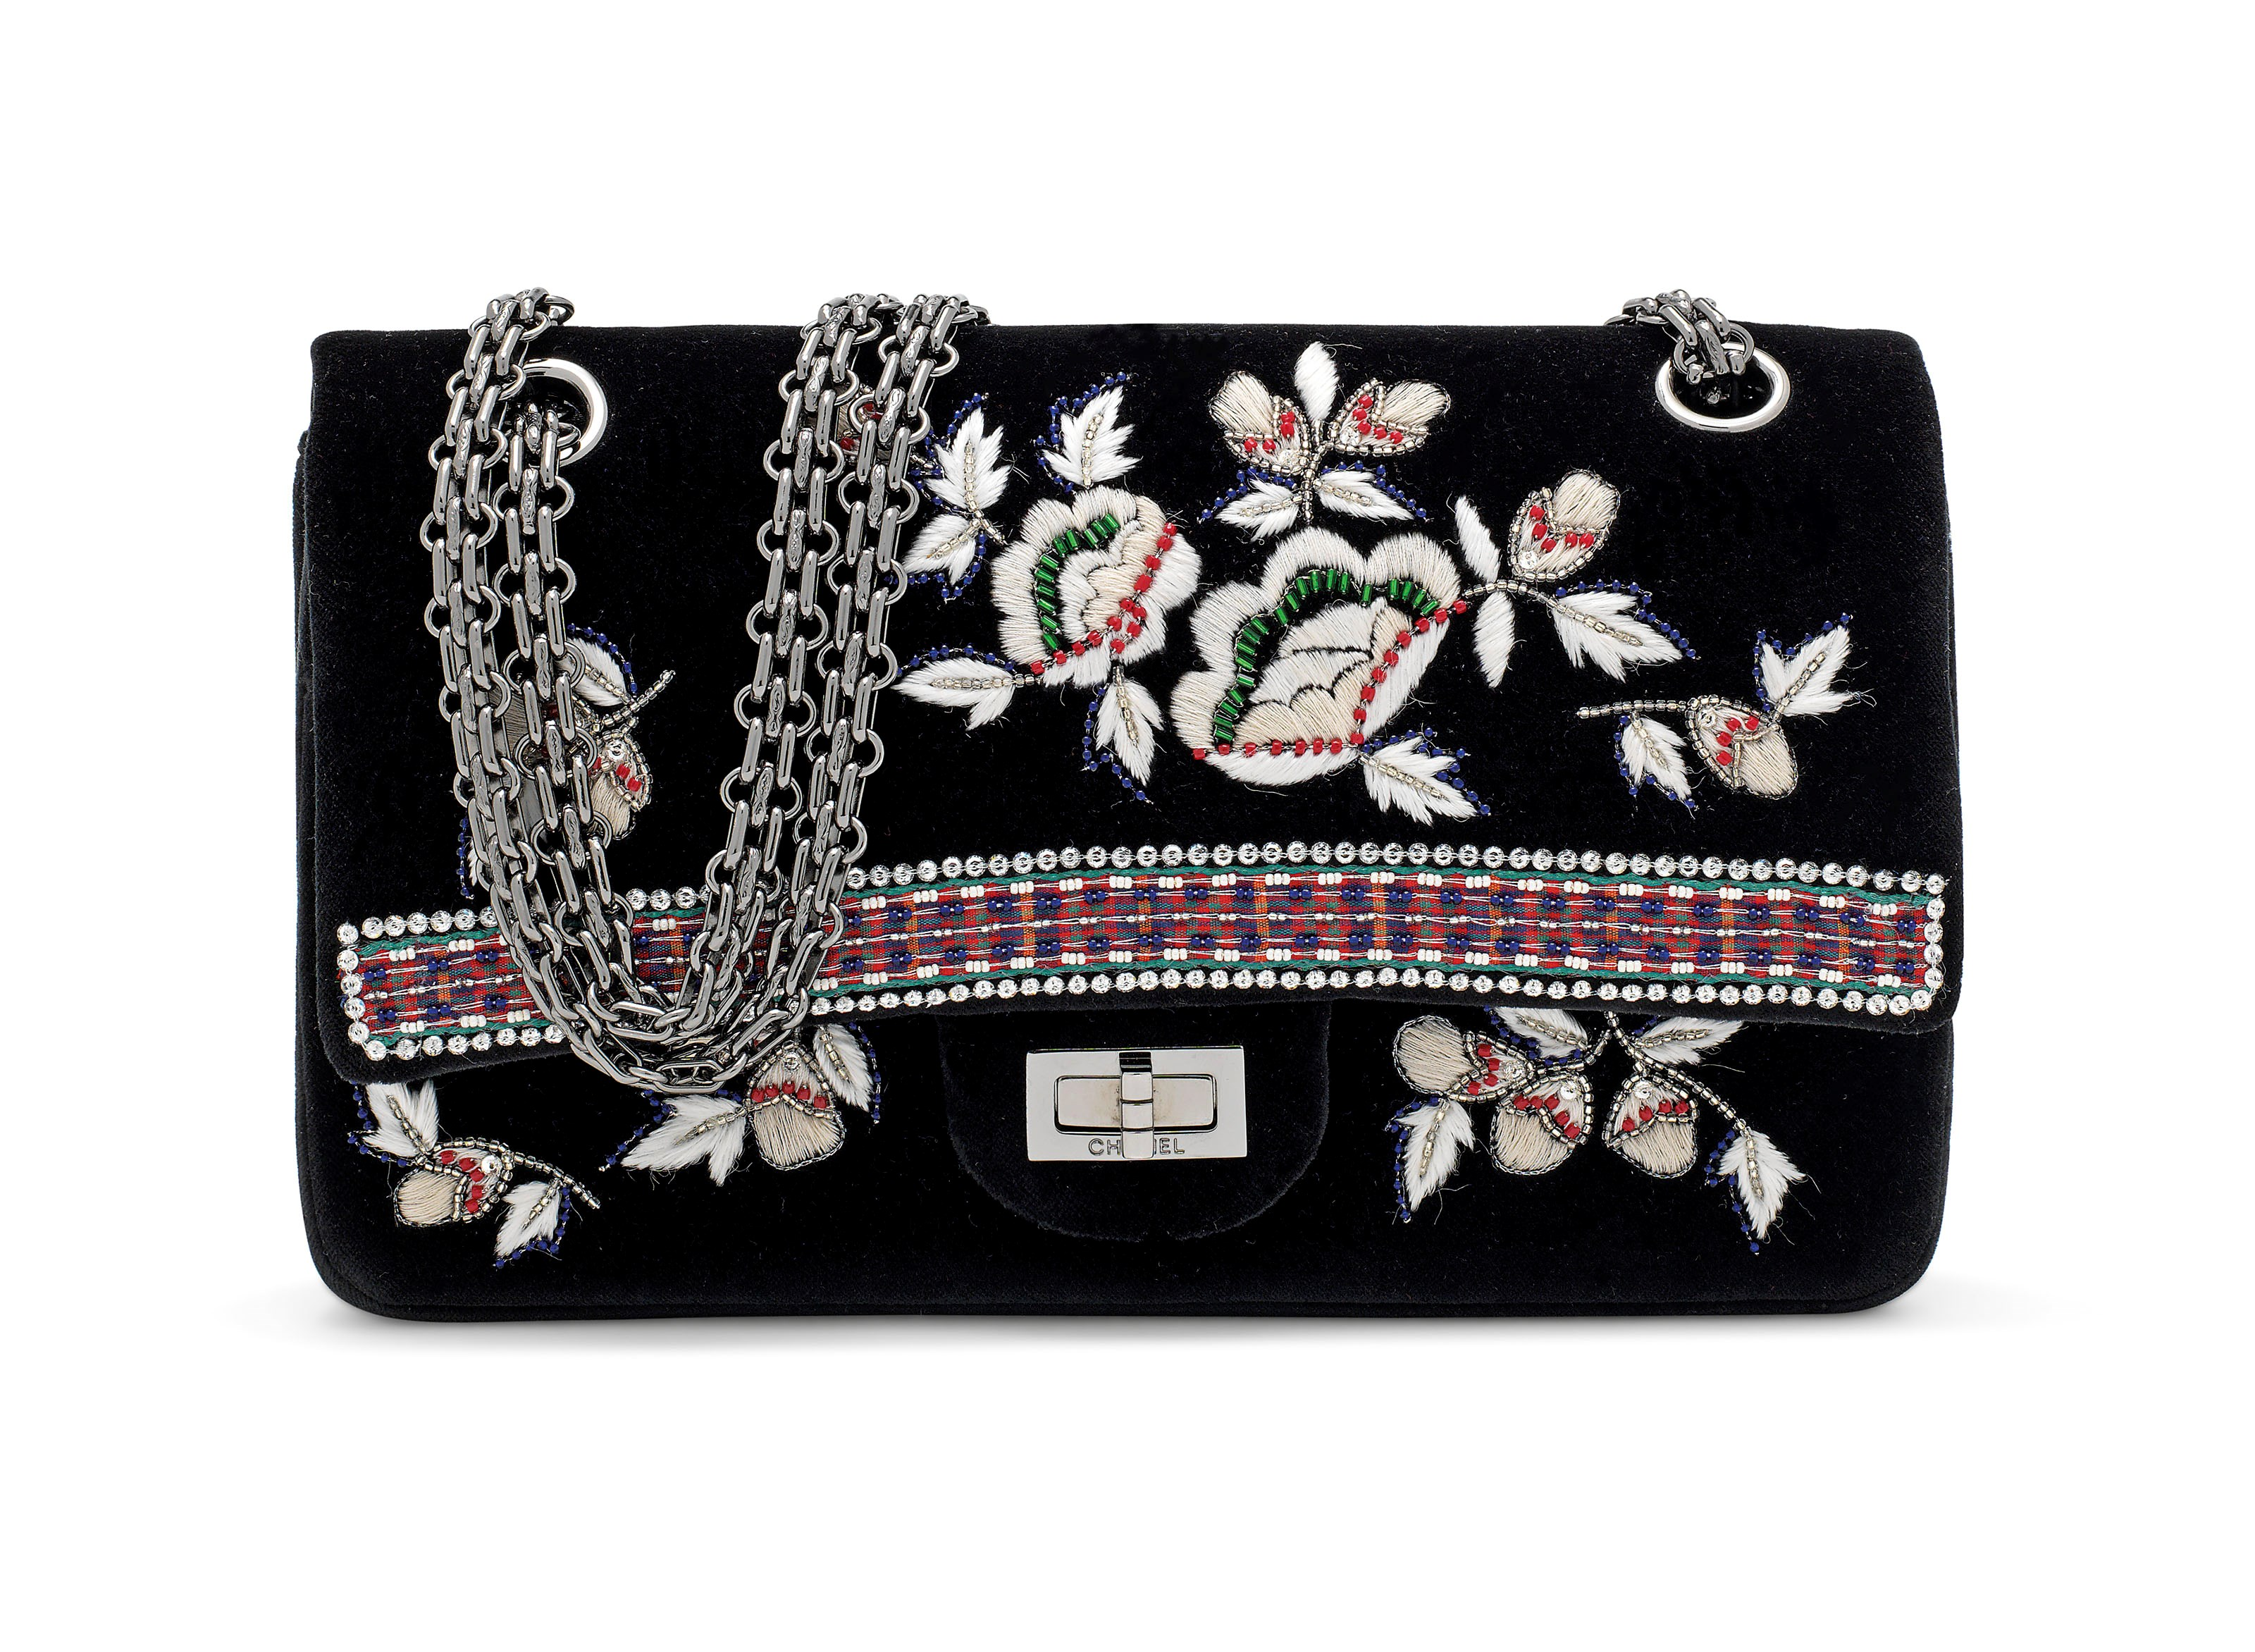 A Métier dArts Paris-Salzburg Lesage embroidery & velvet medium double flap 2.55 with Ruthénium Hardware, Chanel, 2016. 25 w x 15 h x 8 d cm. Estimate £2,000-3,000. This lot is offered in Handbags & Accessories on 12 December 2018 at Christie's in London